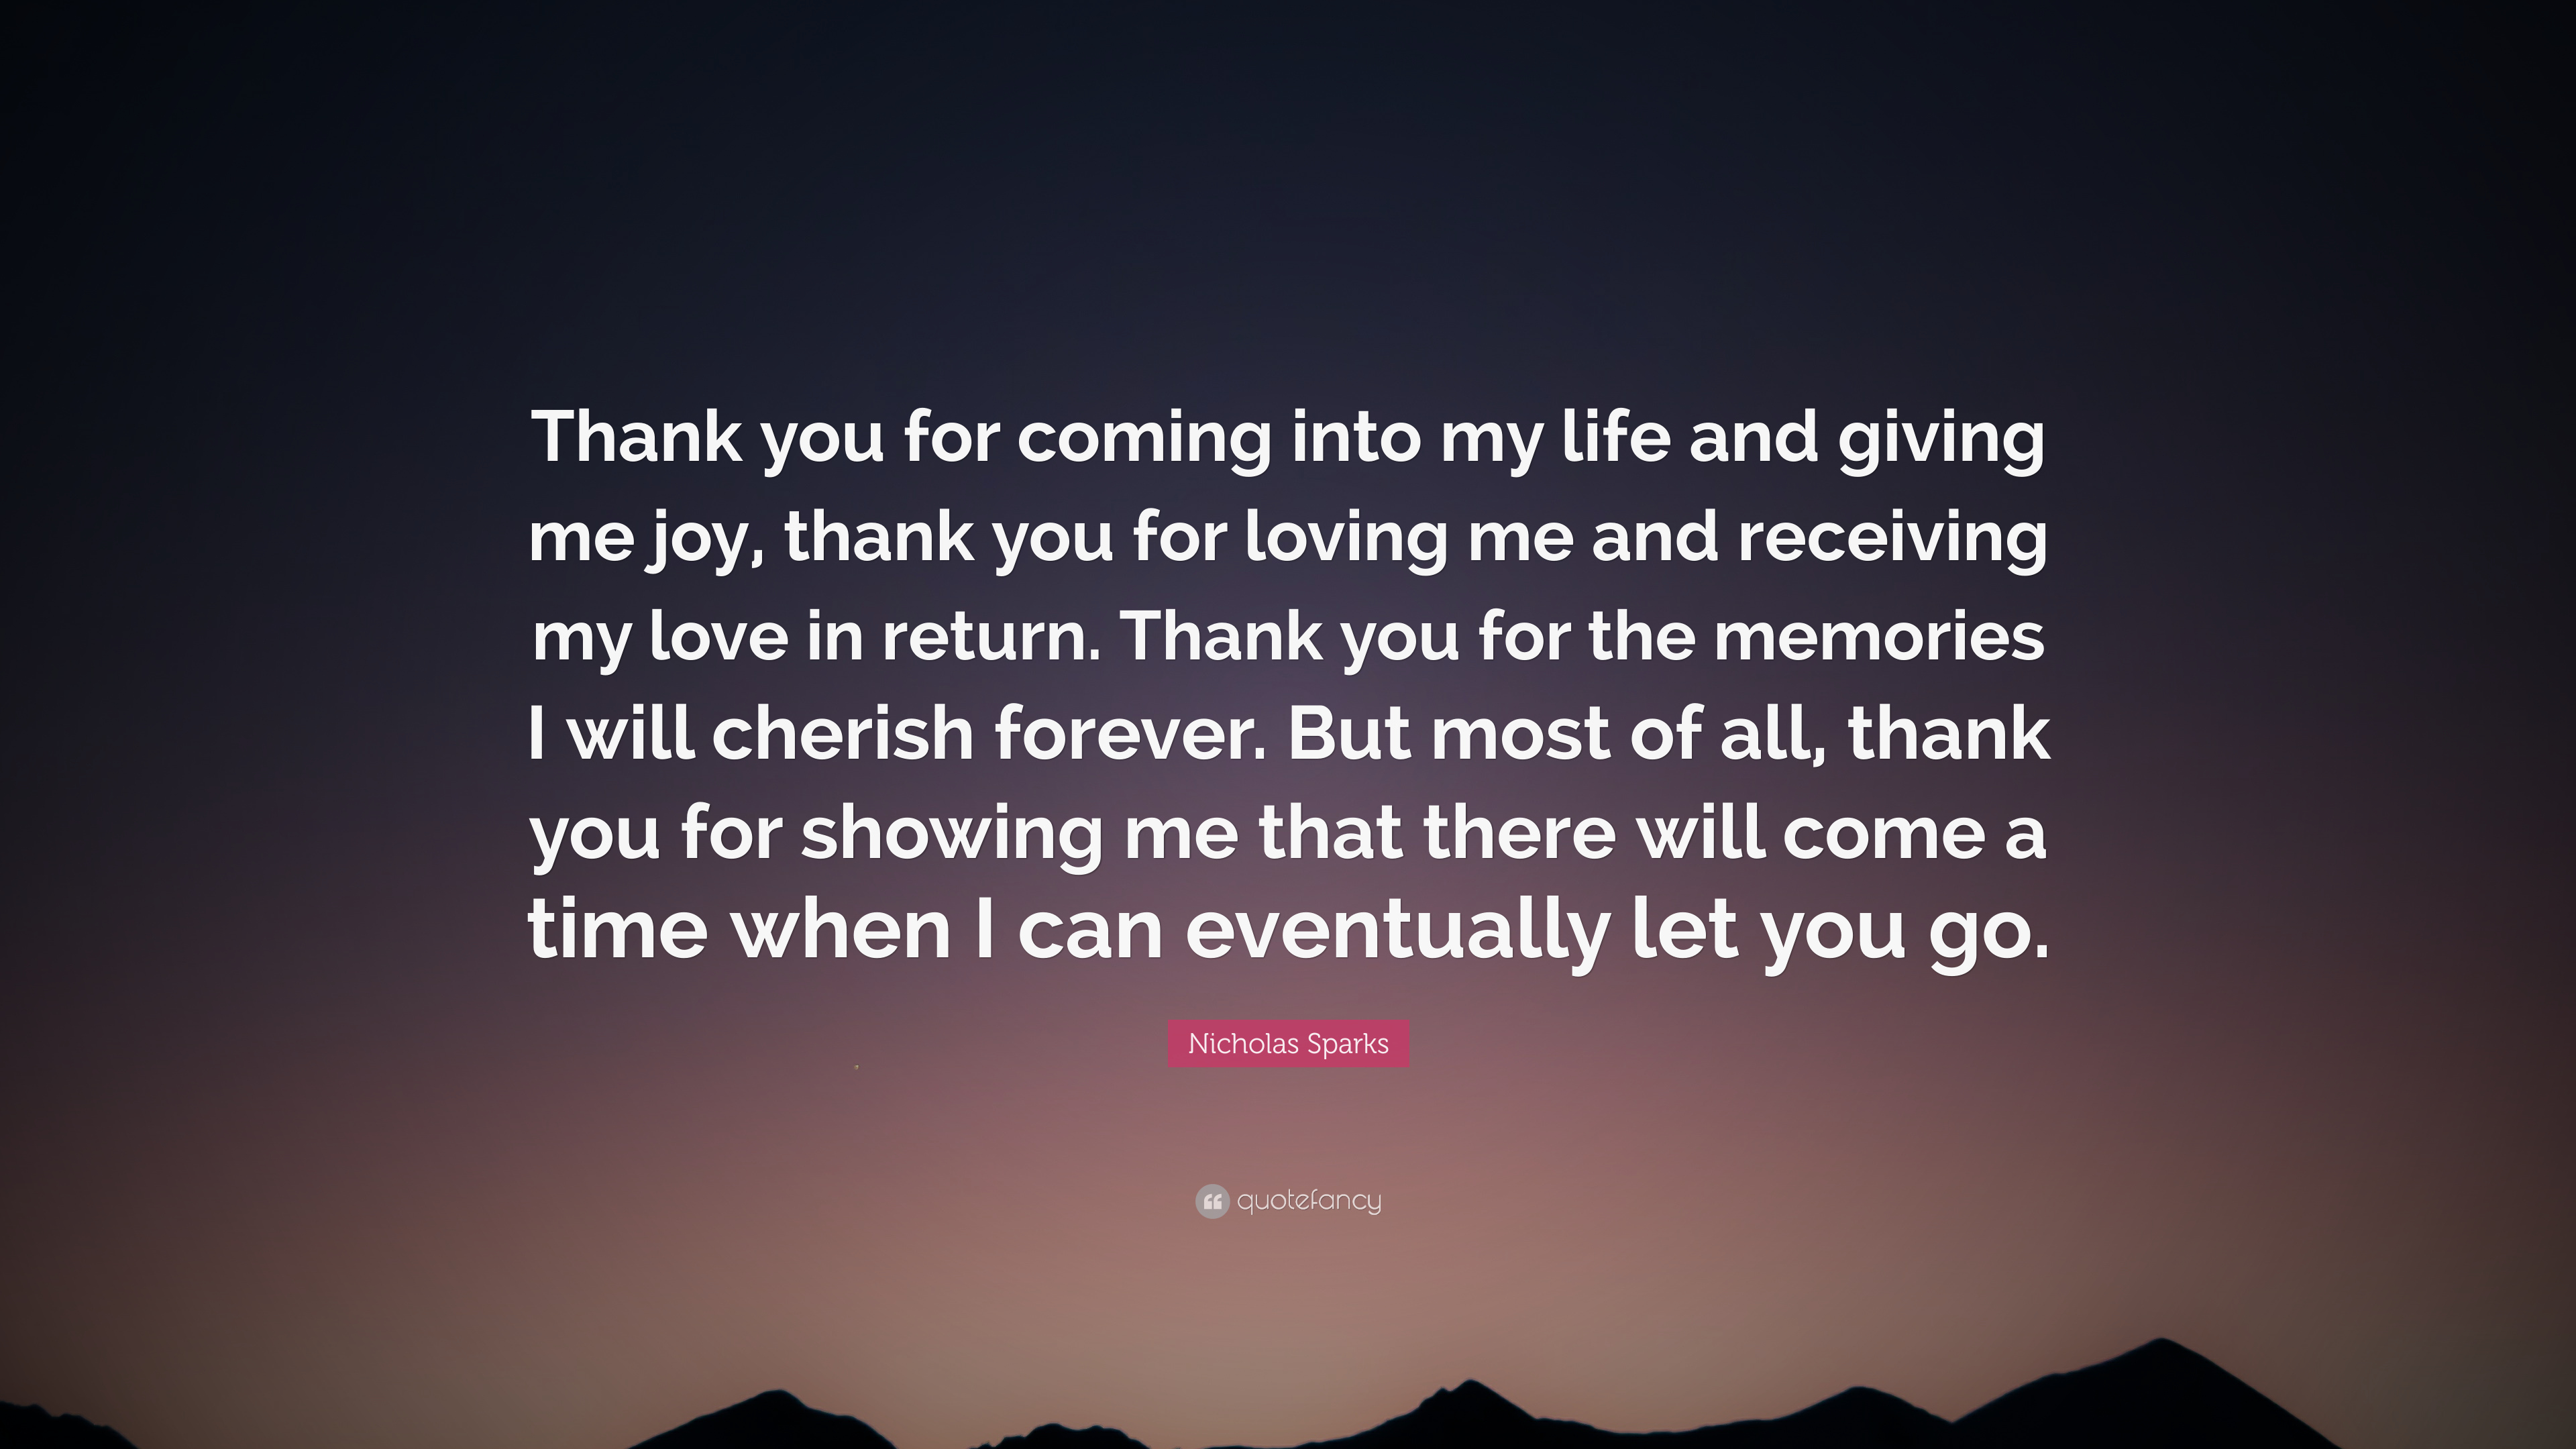 Fresh Thank You for Coming Into My Life Quotes | Best life ...